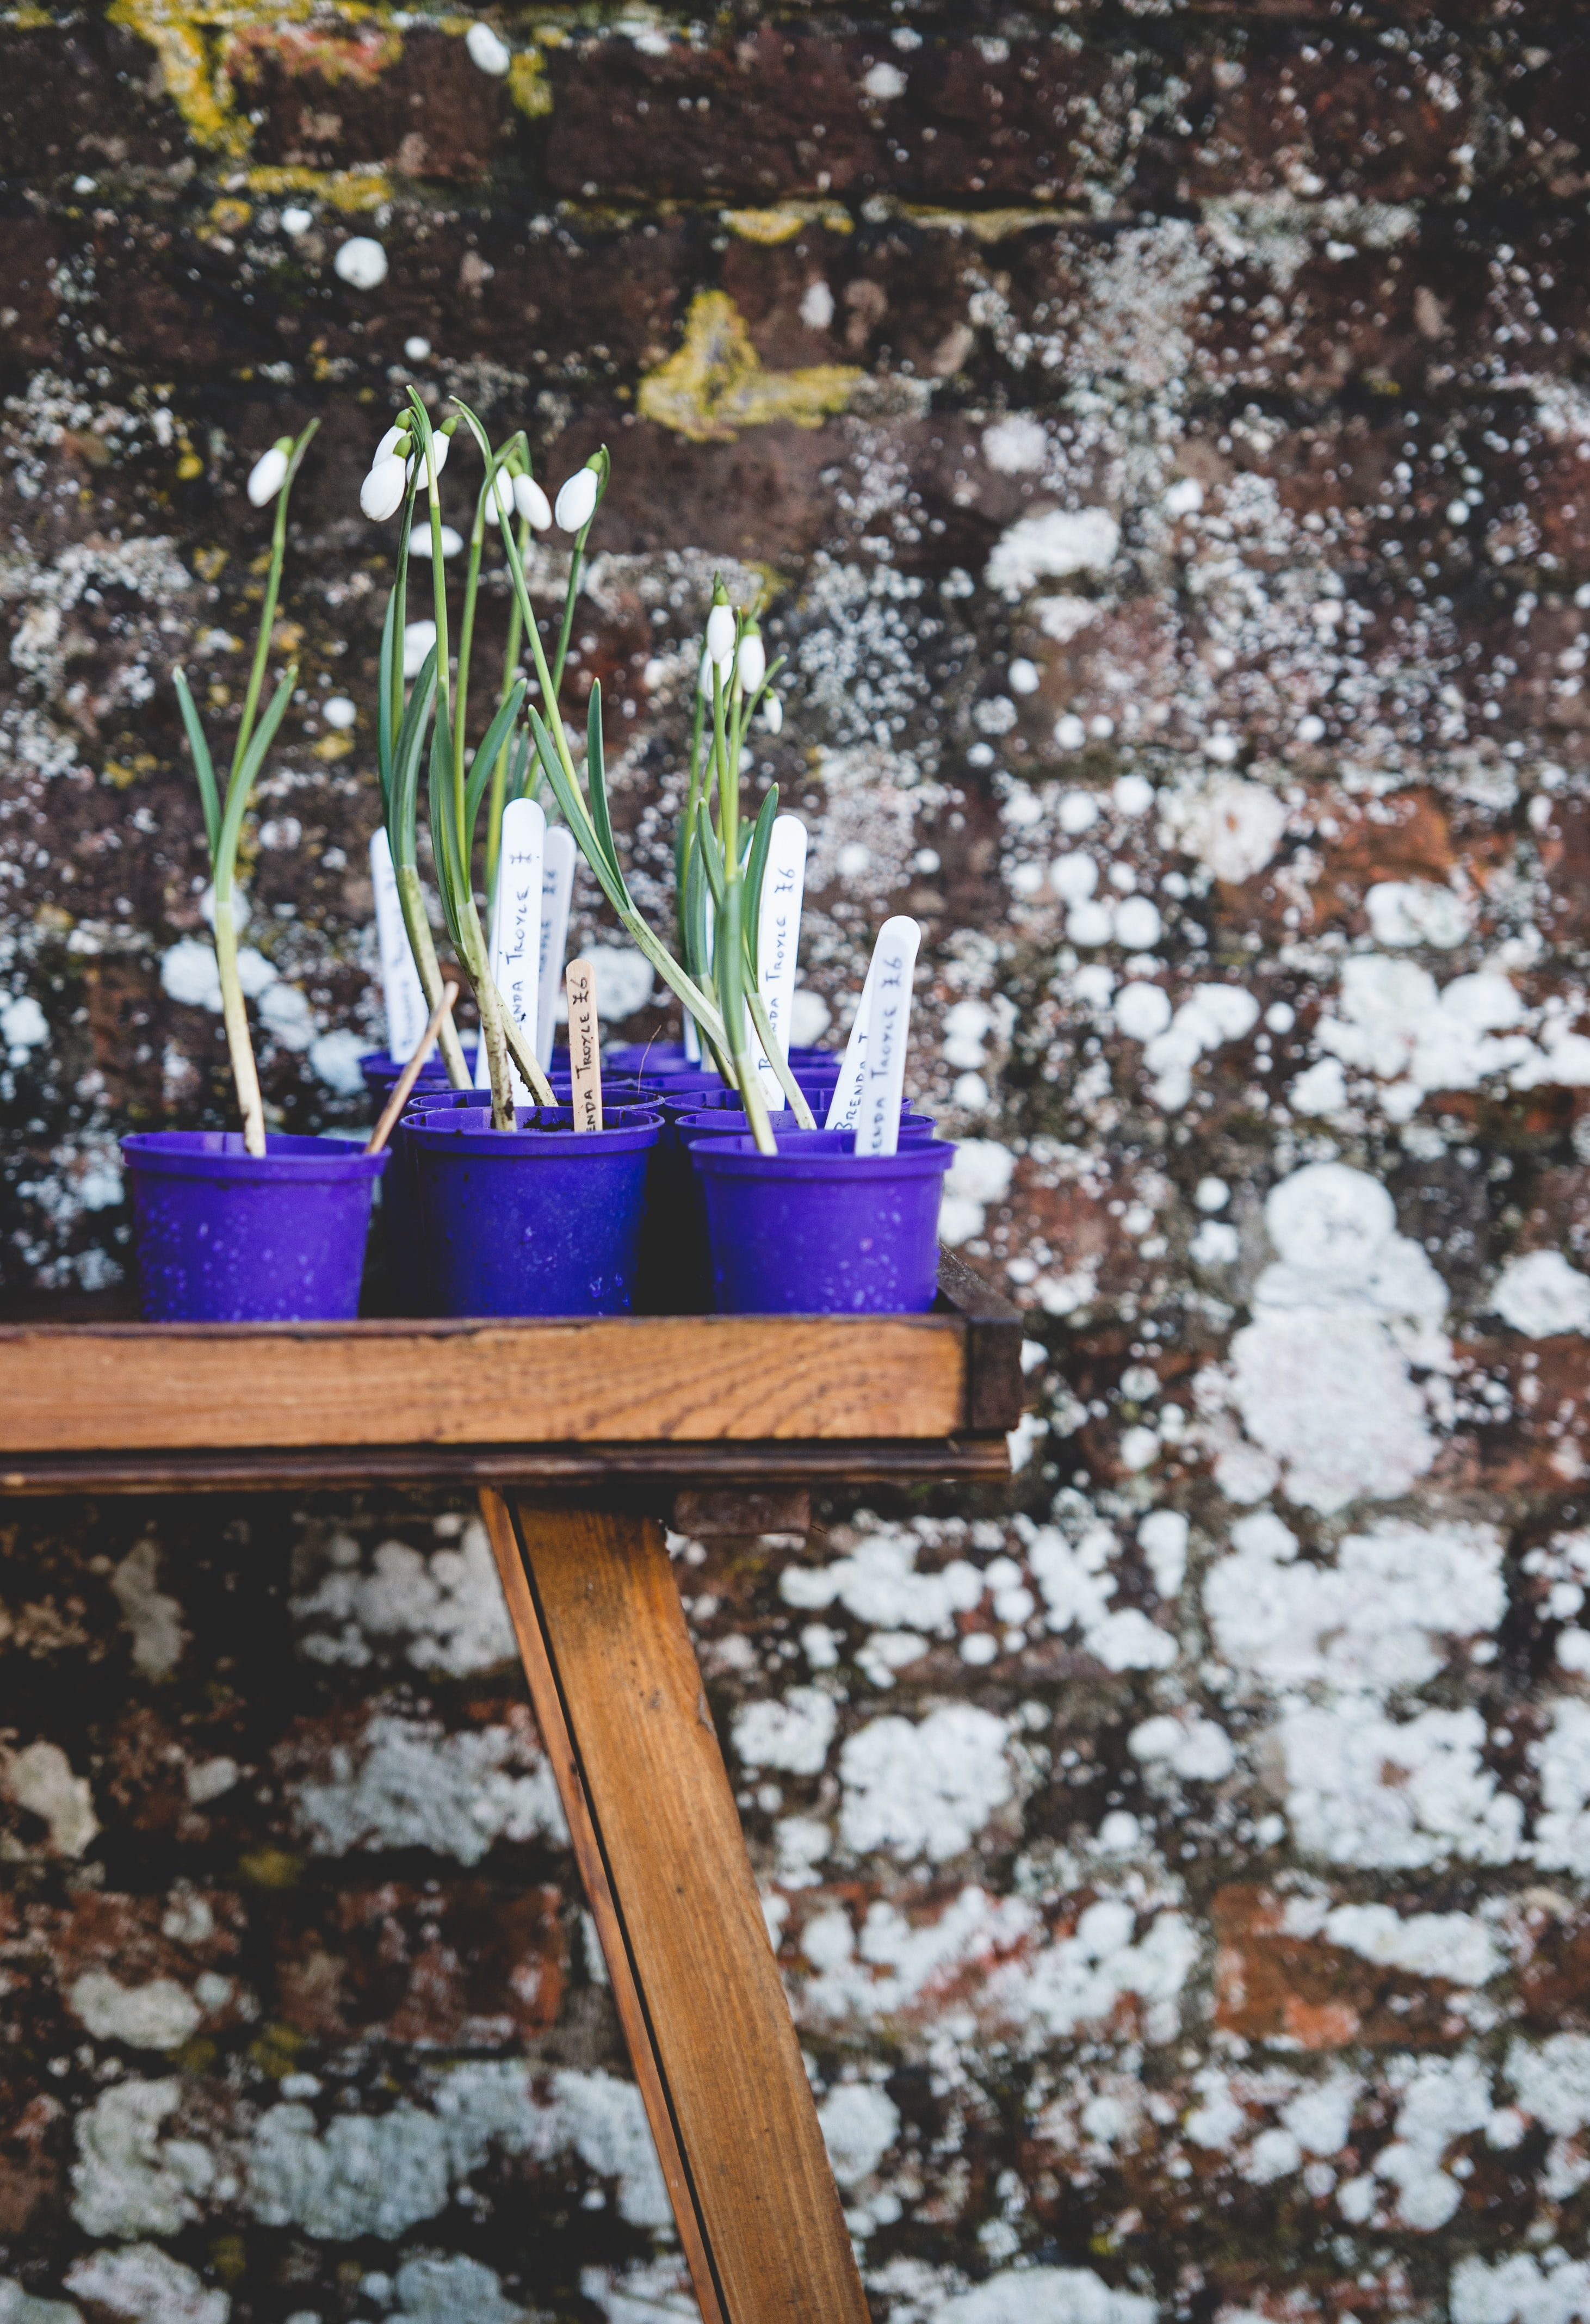 White snowdrop flowers in small blue pots on a shelf